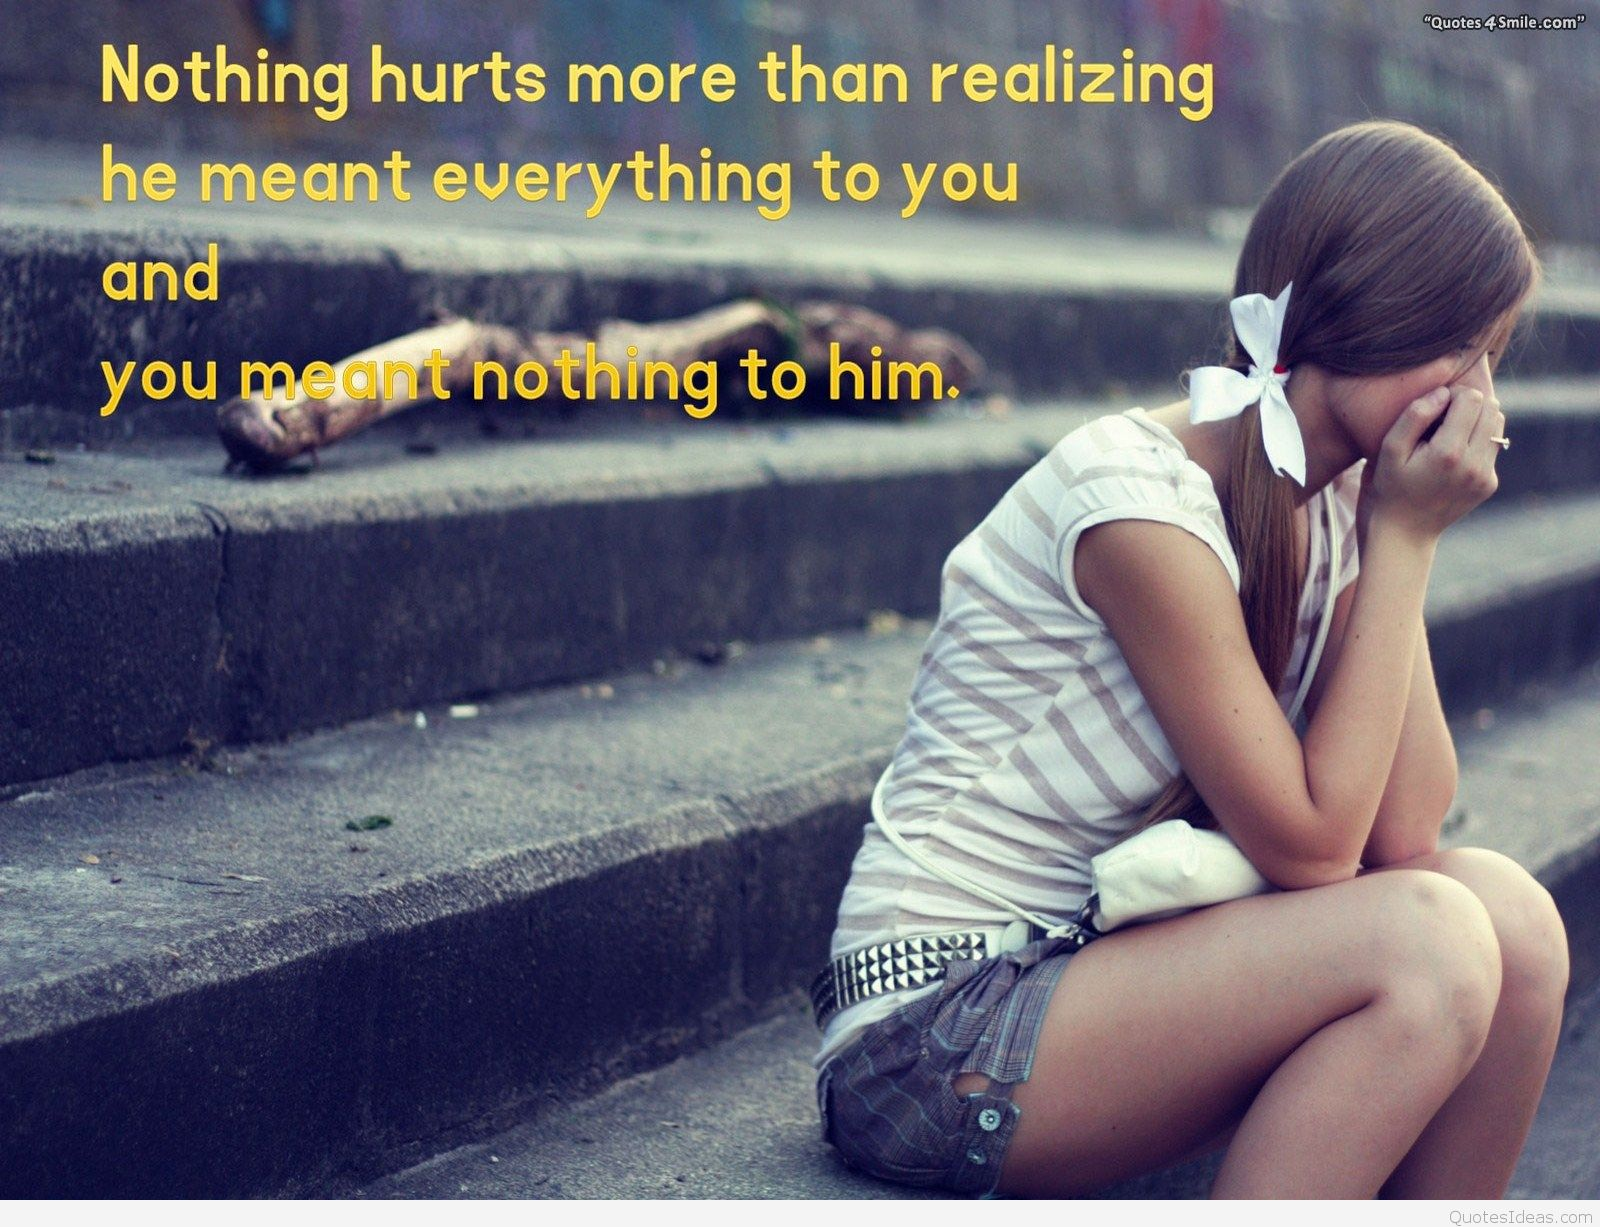 Amazing Sad love quotes and pictures about bas love relationships